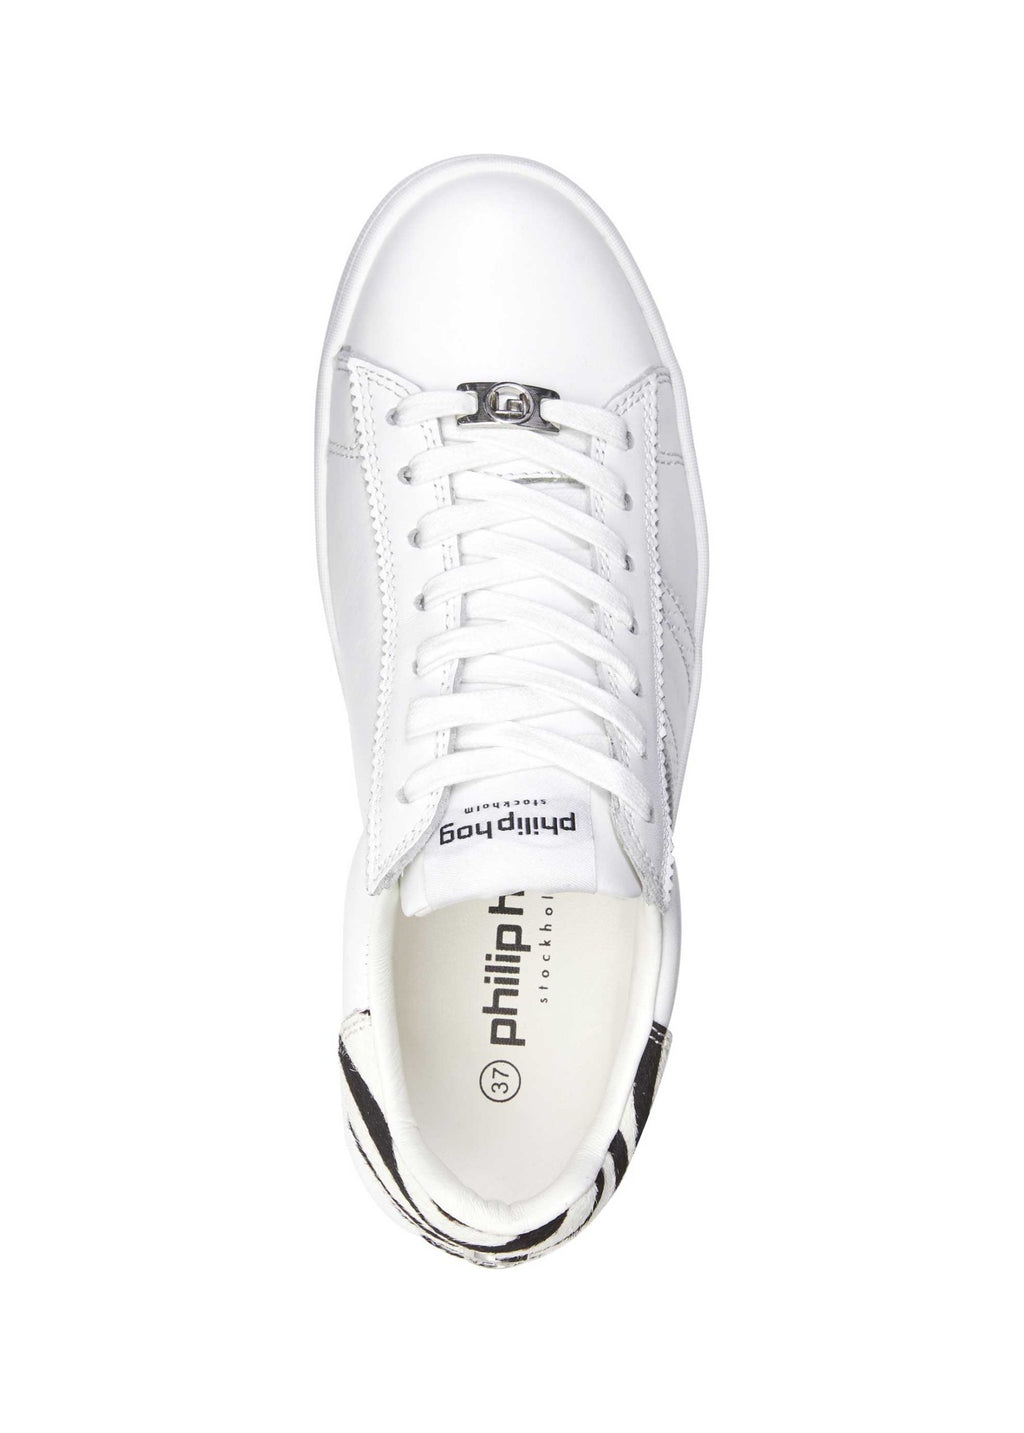 Philip Hog Serena Zebra Trainer - White